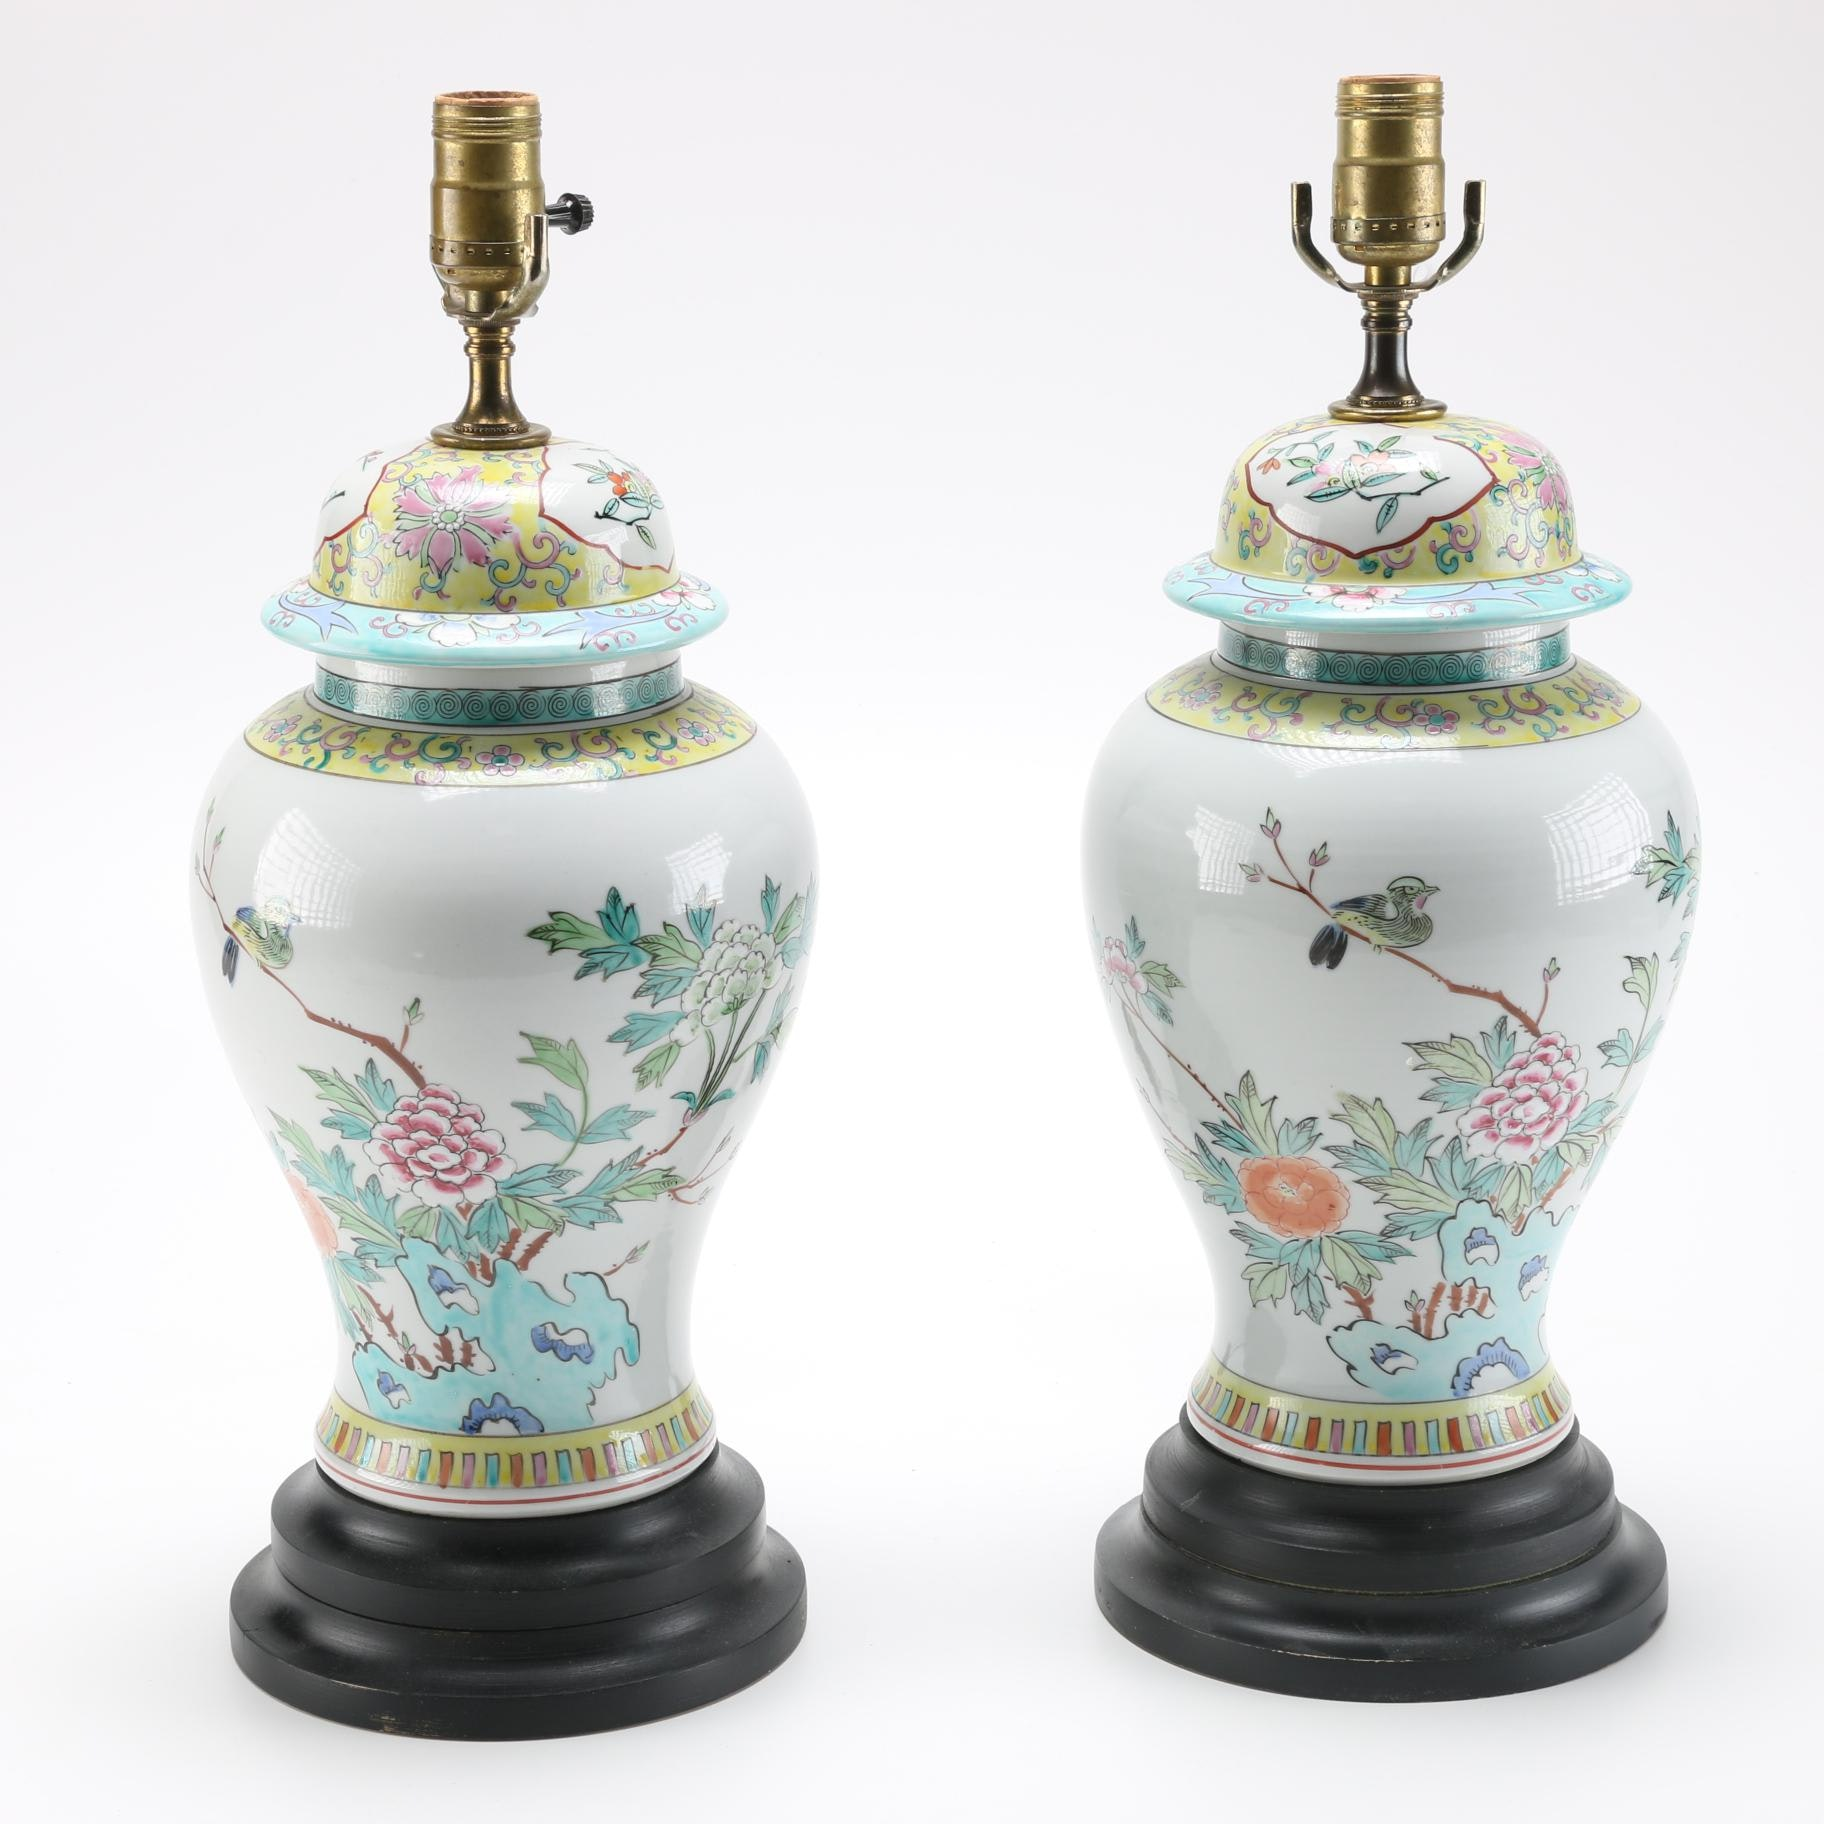 Chinese Ceramic Urn Table Lamps